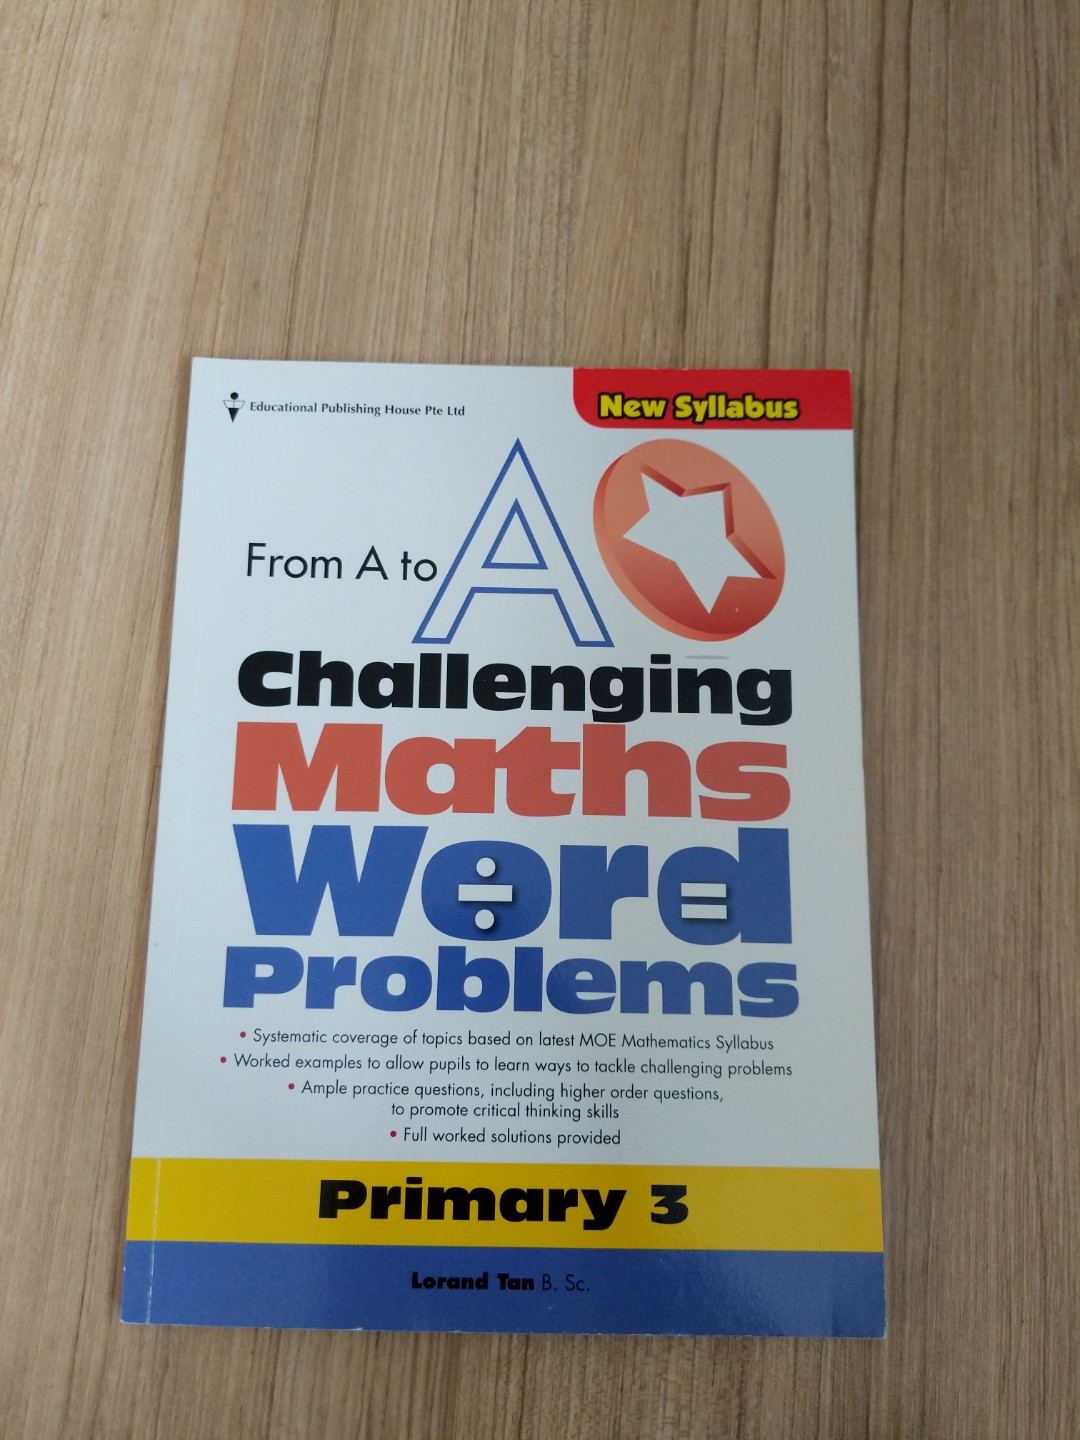 P3 challenging maths word problems, Books & Stationery, Textbooks ...